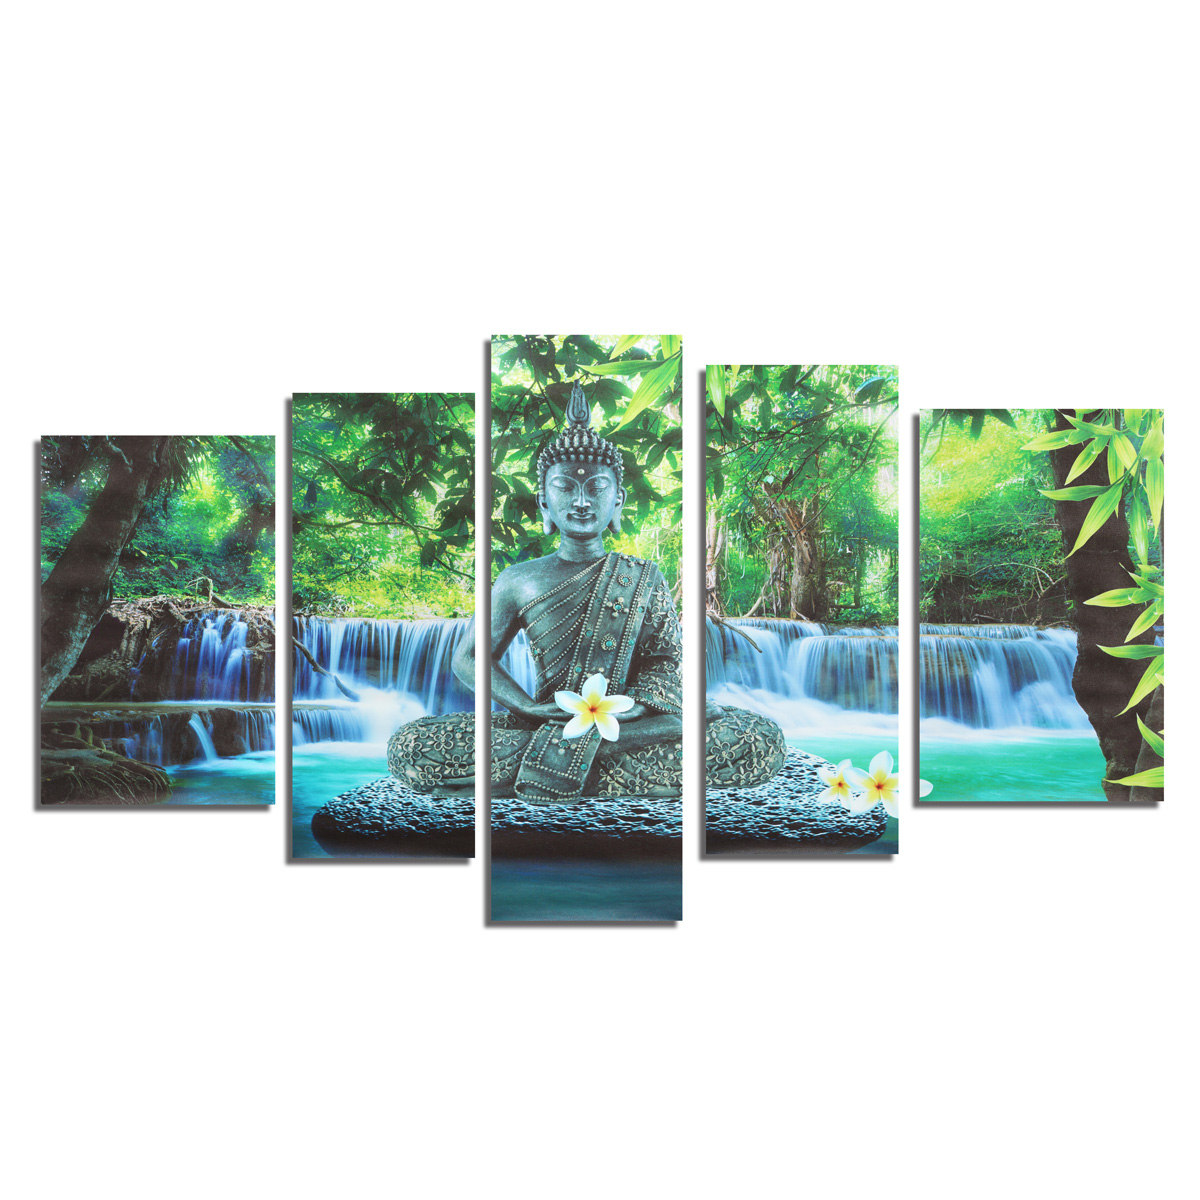 5PCS Buddha Frameless Canvas Print Mural Painting Wall Picture Home Decoration